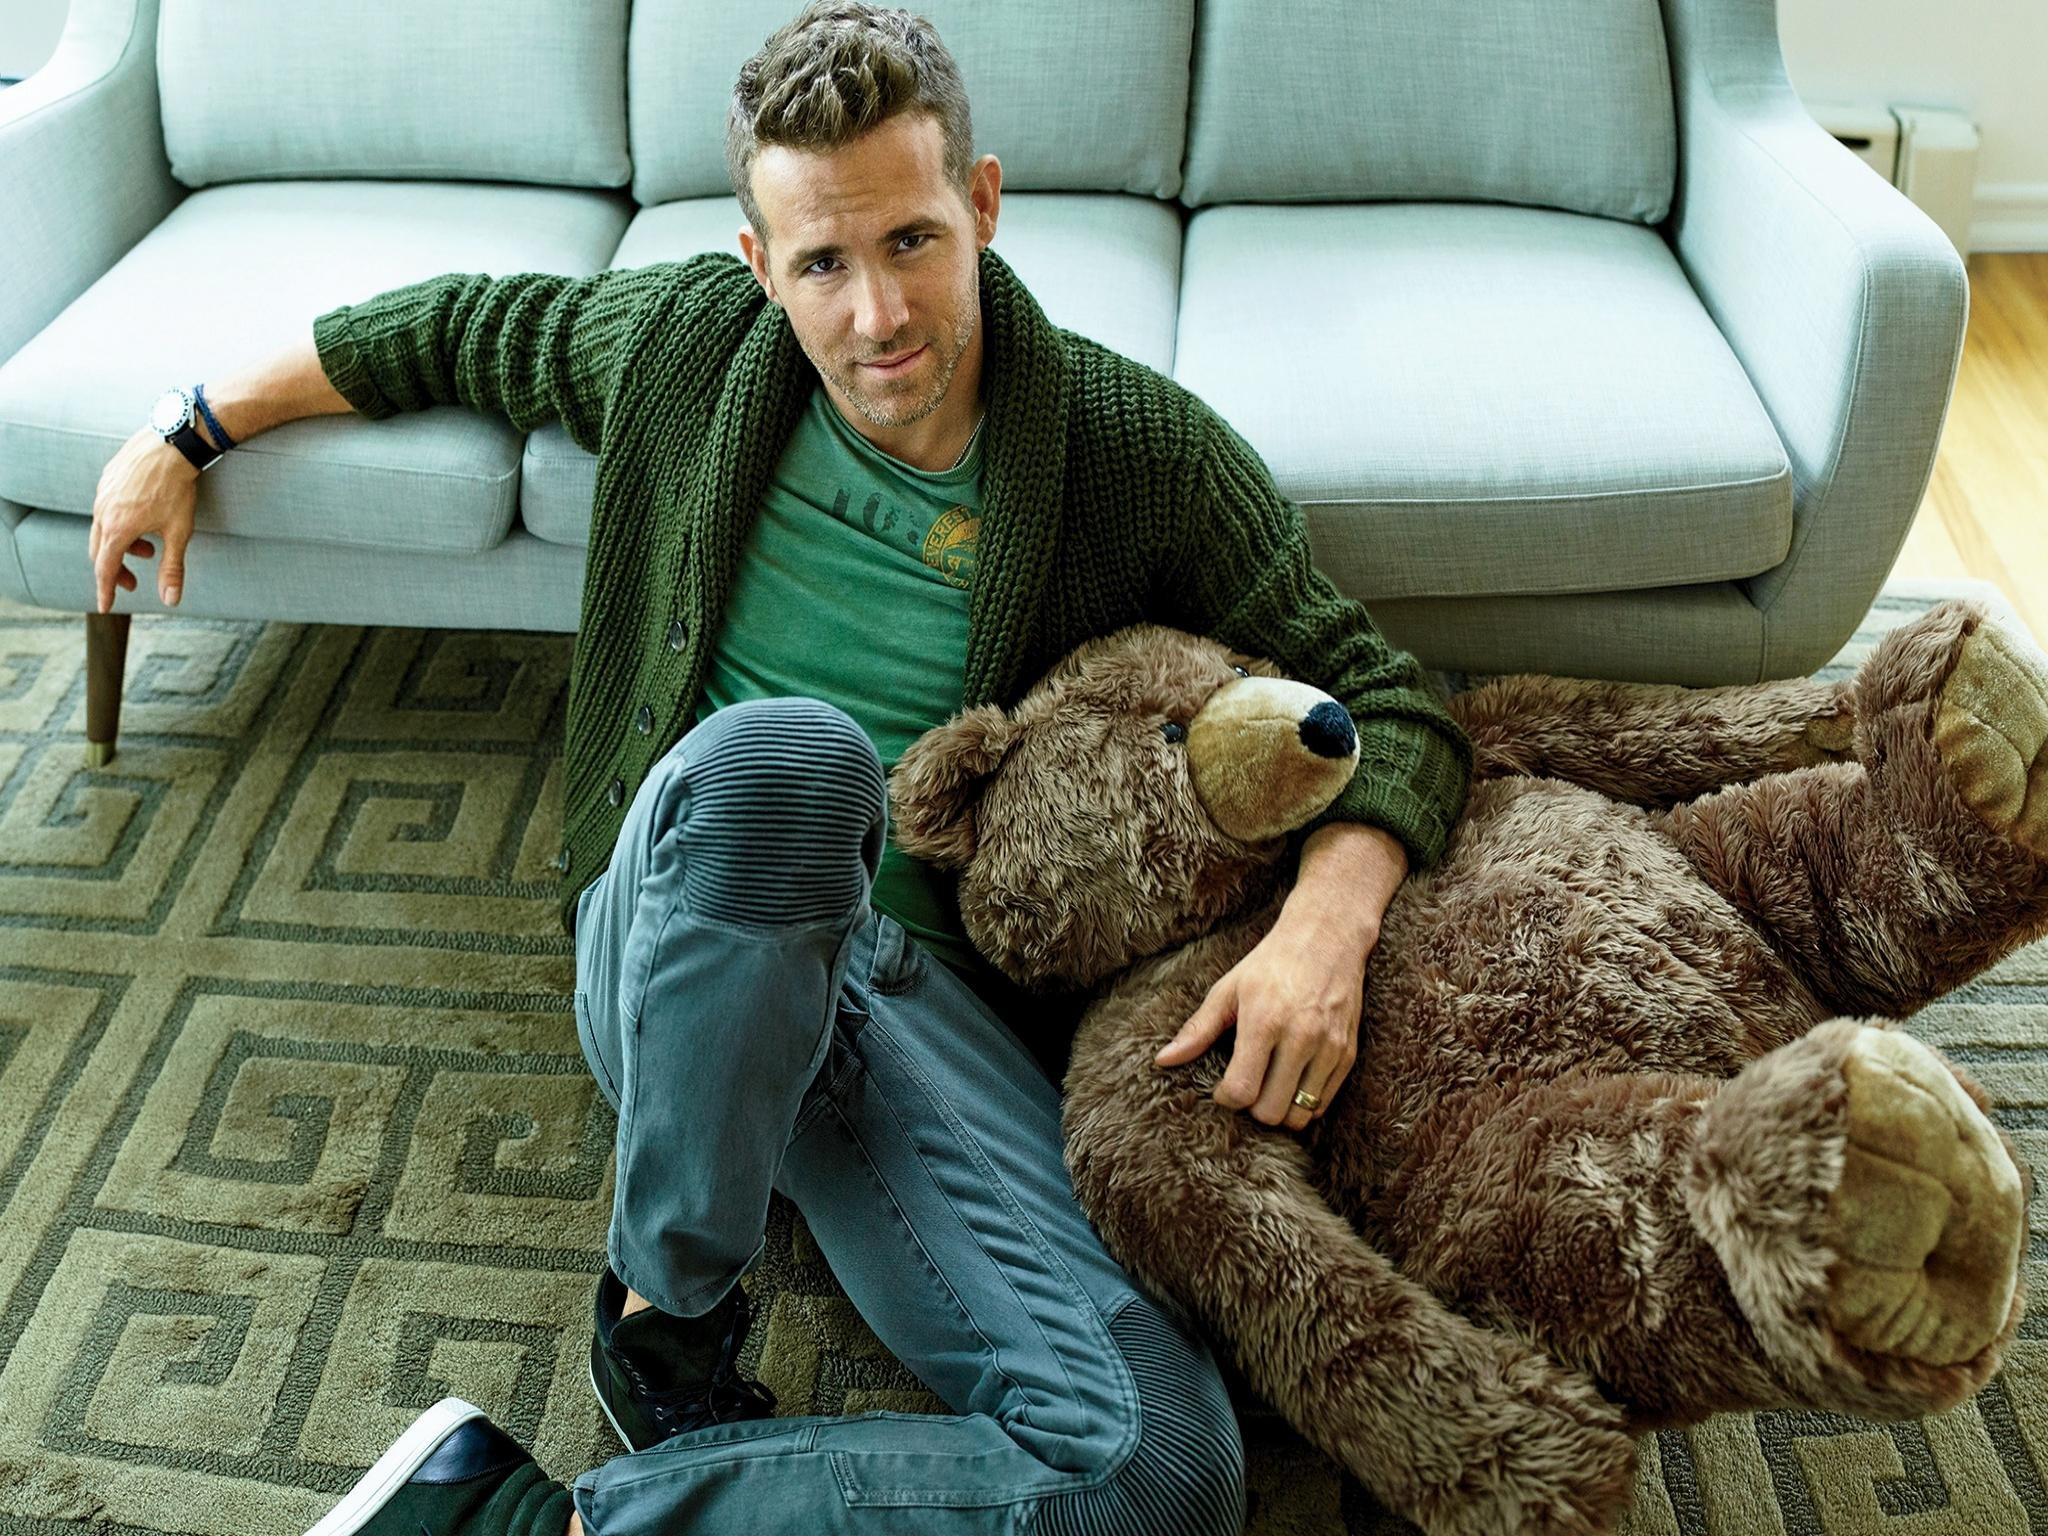 Free download Ryan Reynolds background ID:117573 hd 2048x1536 for desktop